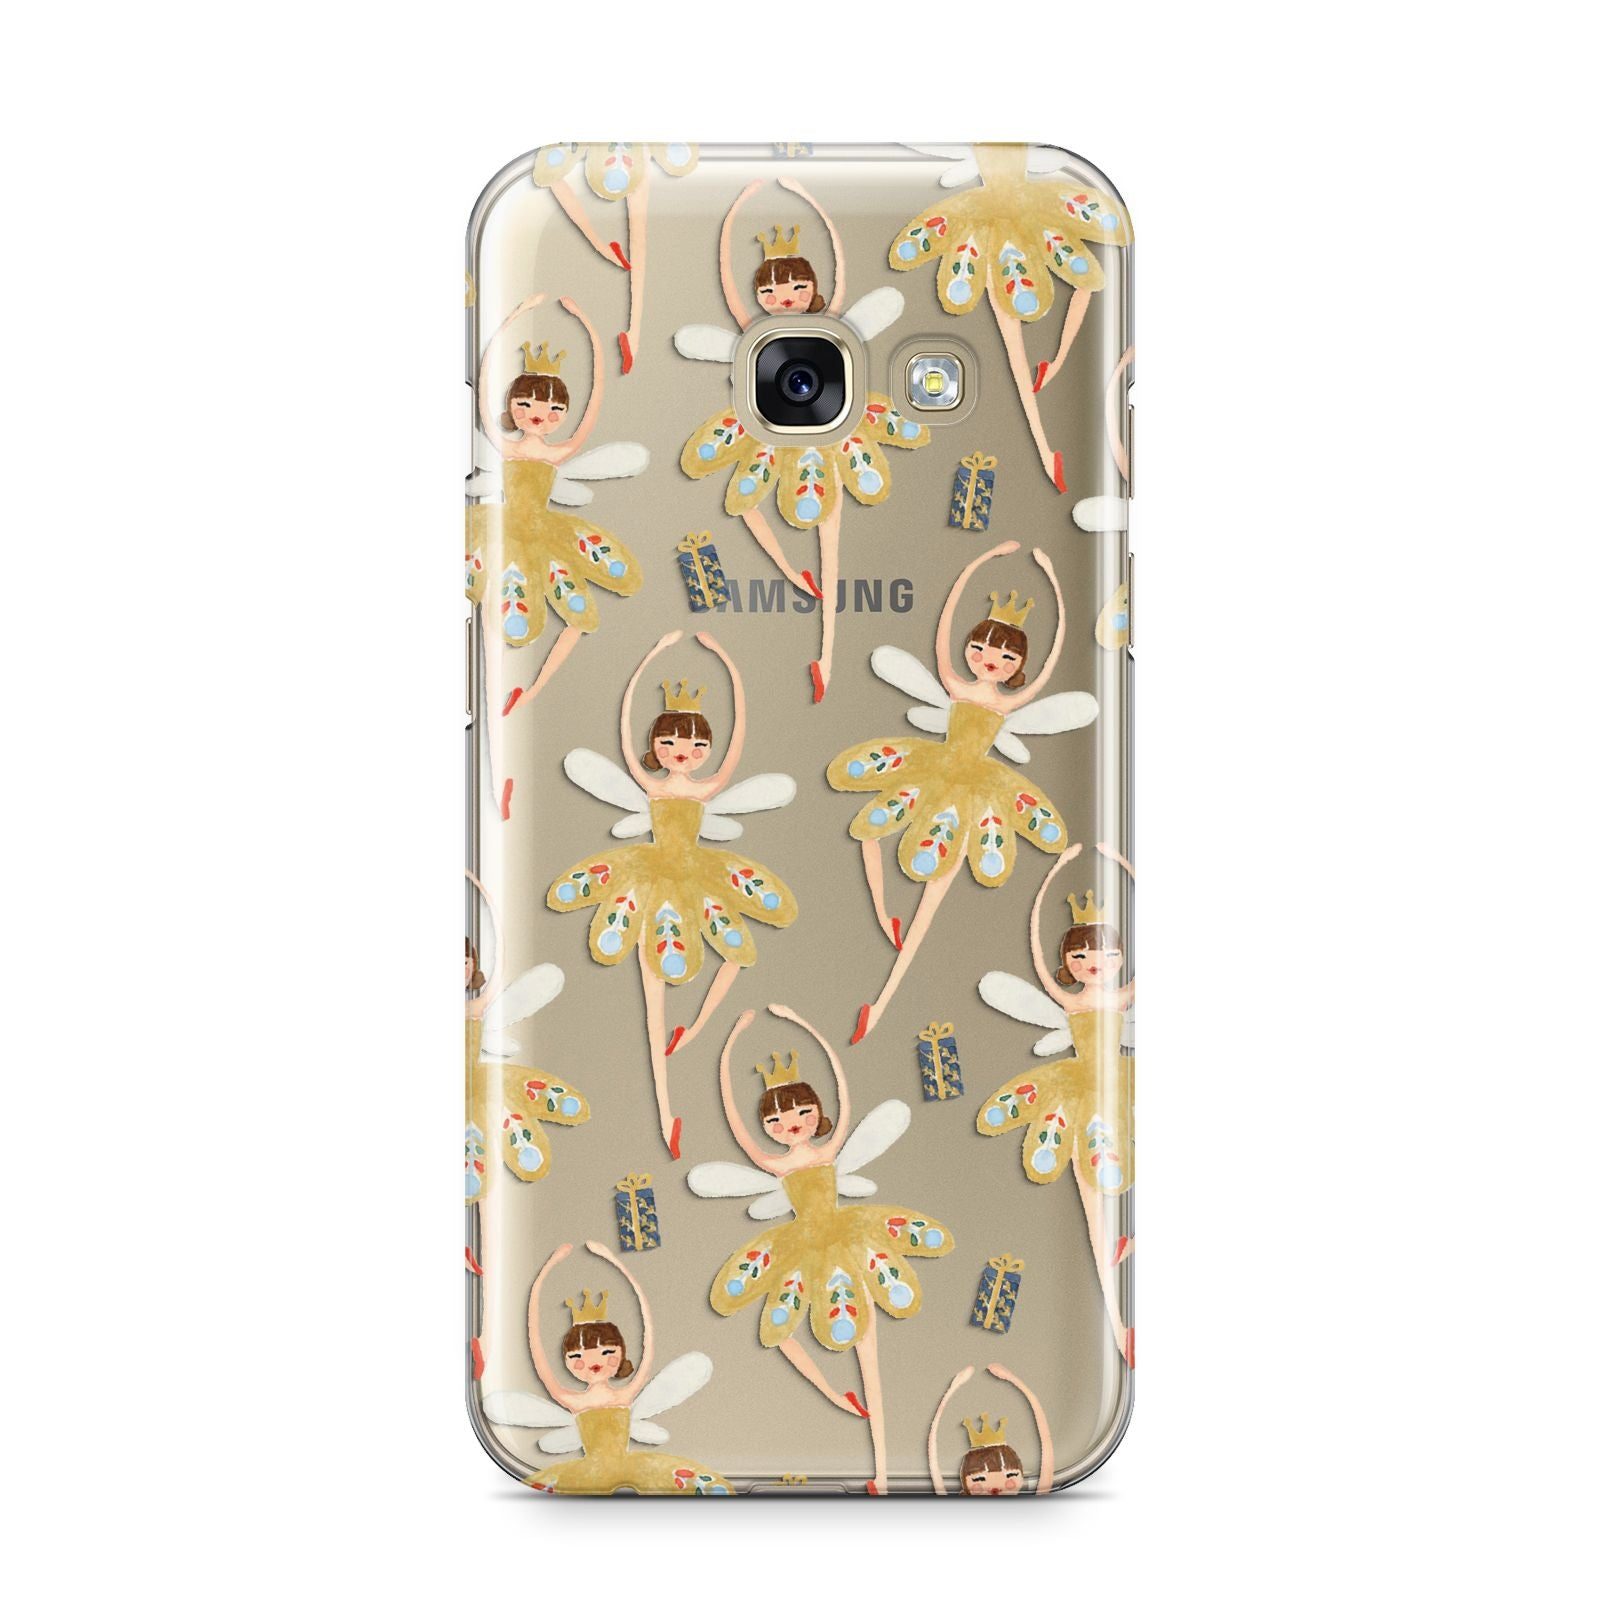 Dancing ballerina princess Samsung Galaxy A3 2017 Case on gold phone